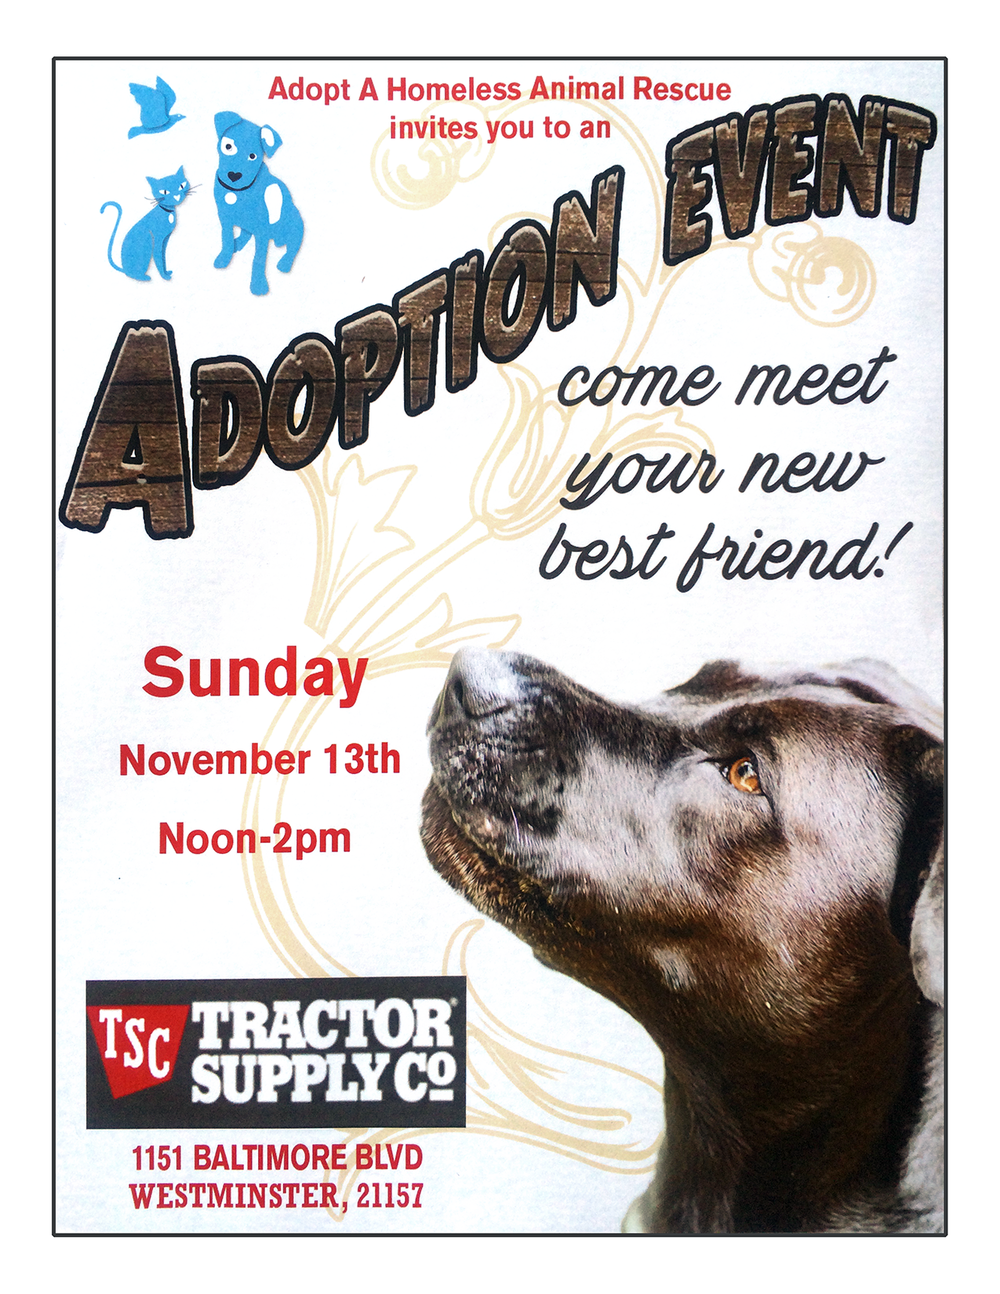 TSC Tractor Supply Co Adoption Event Events Adopt A Homeless